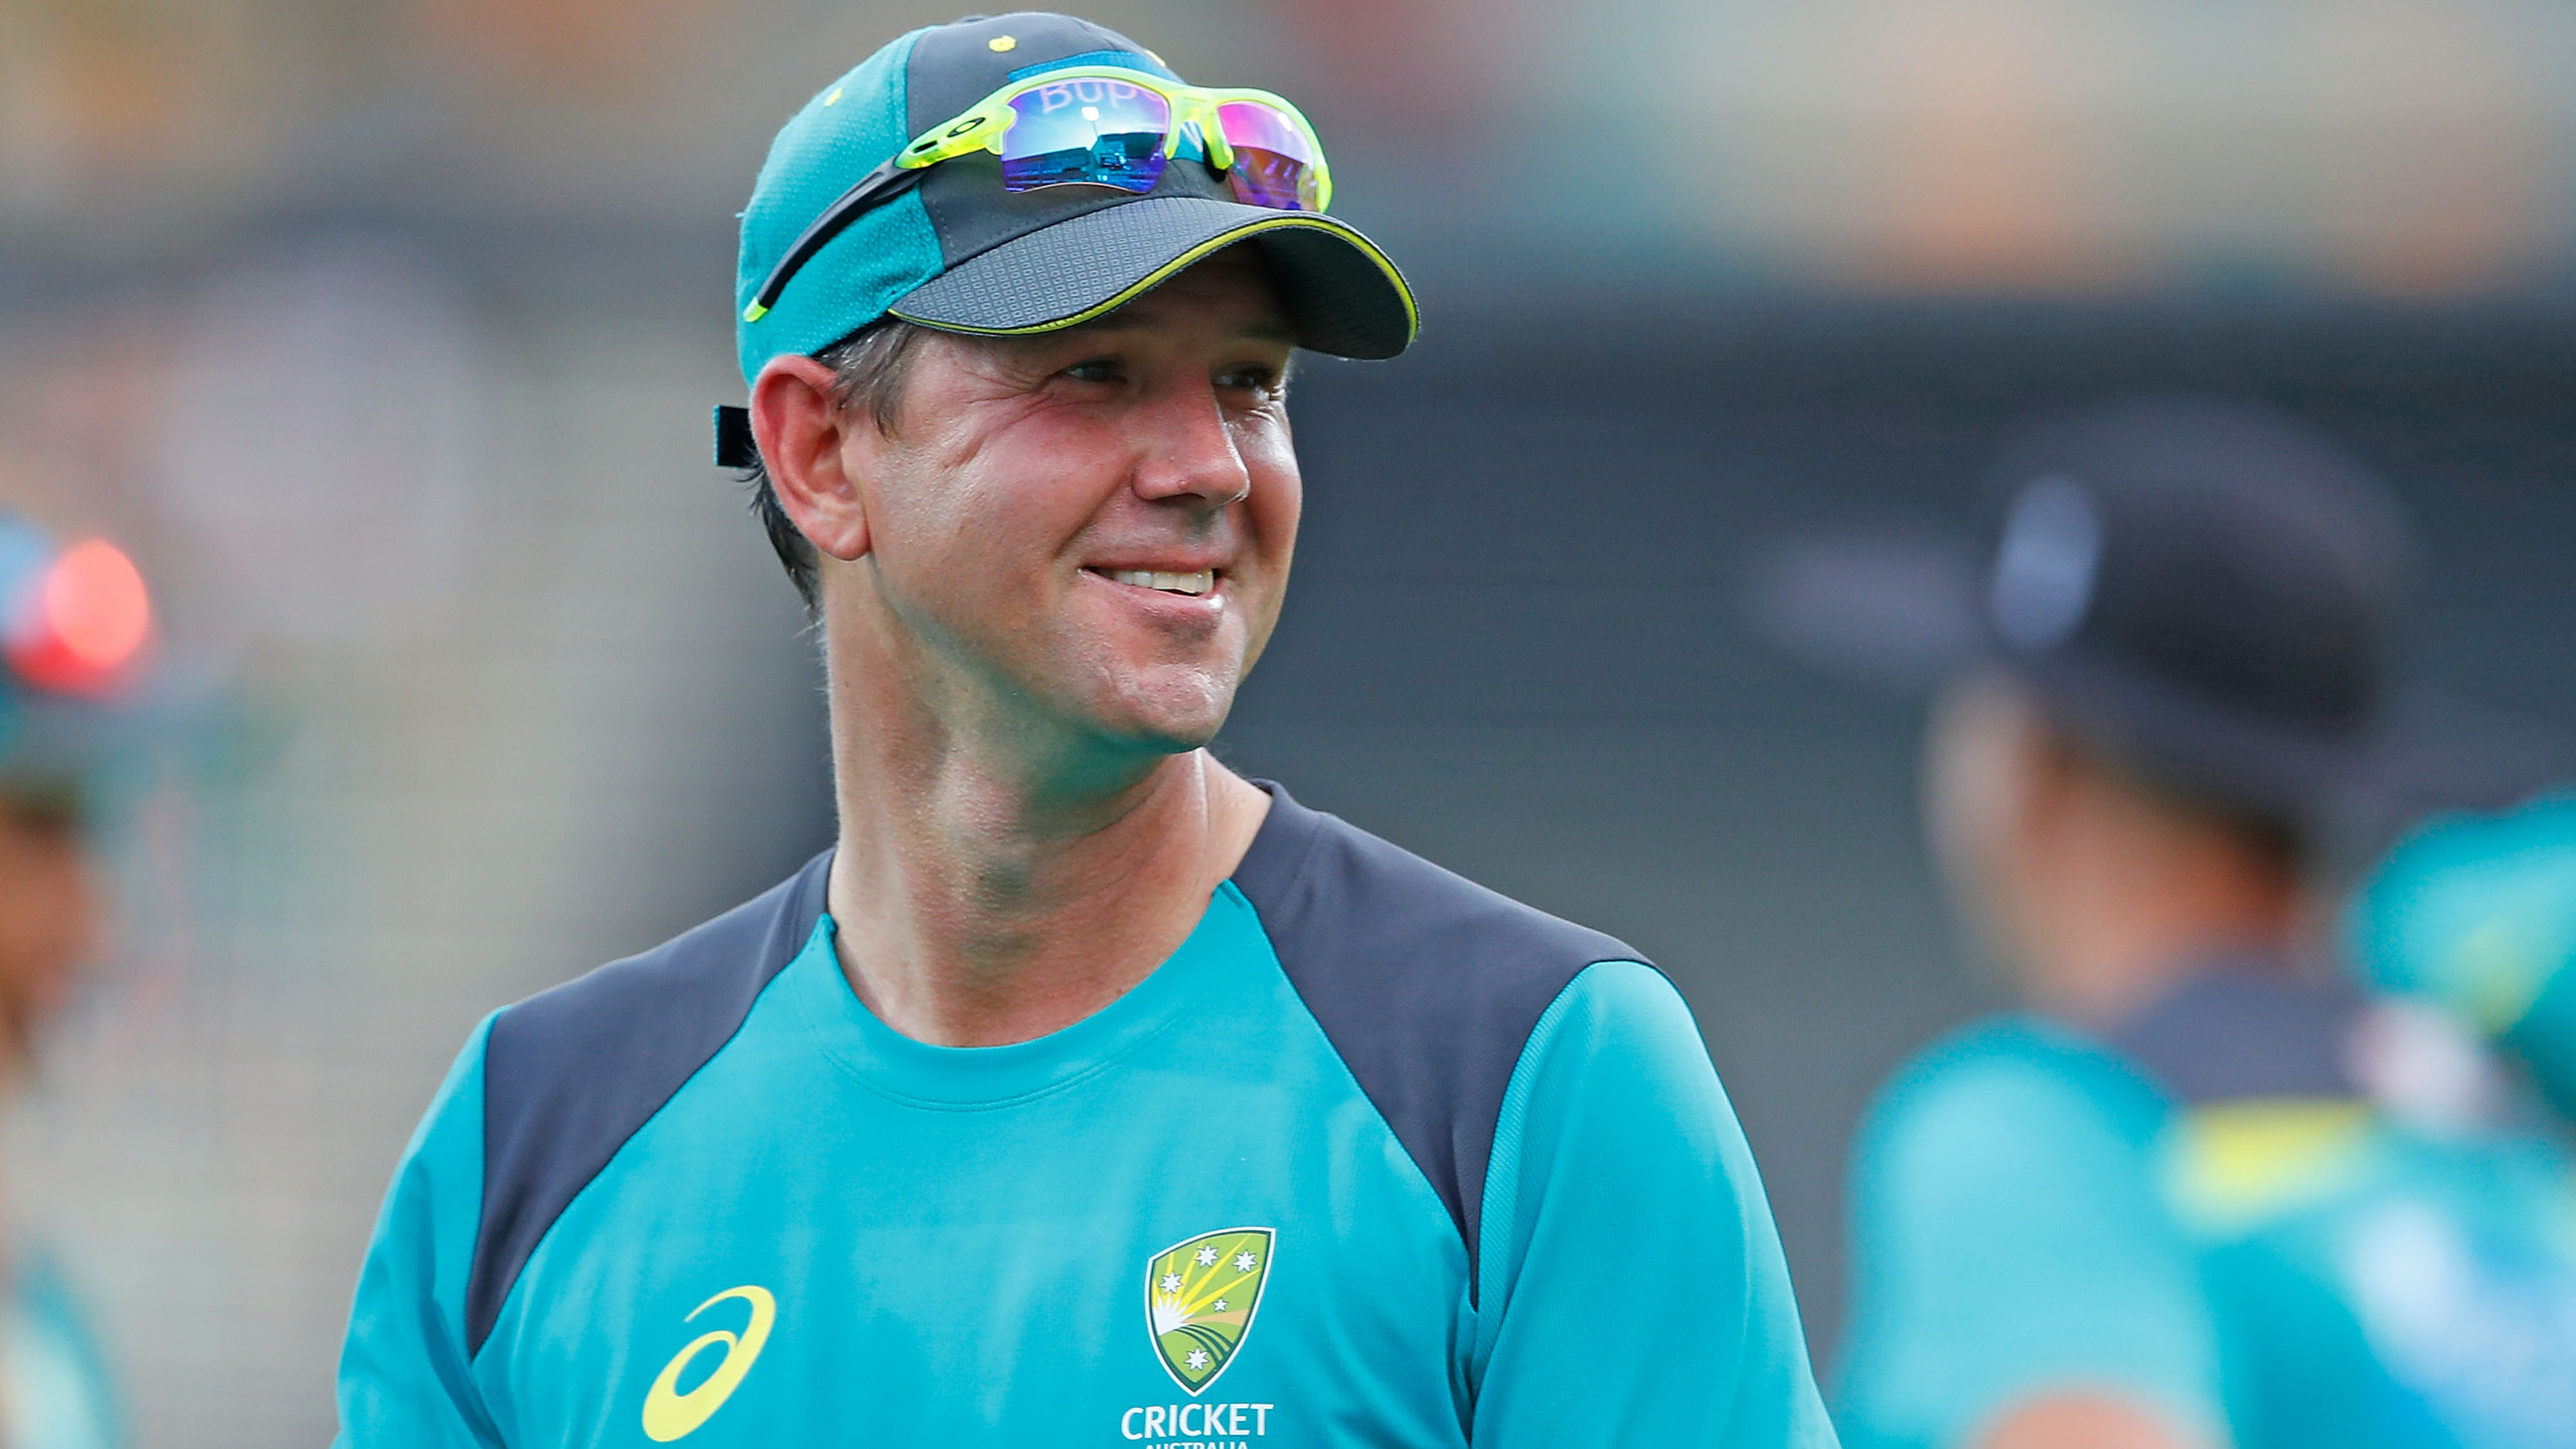 Australia will be a force at next year's World Cup, reckons Ricky Ponting